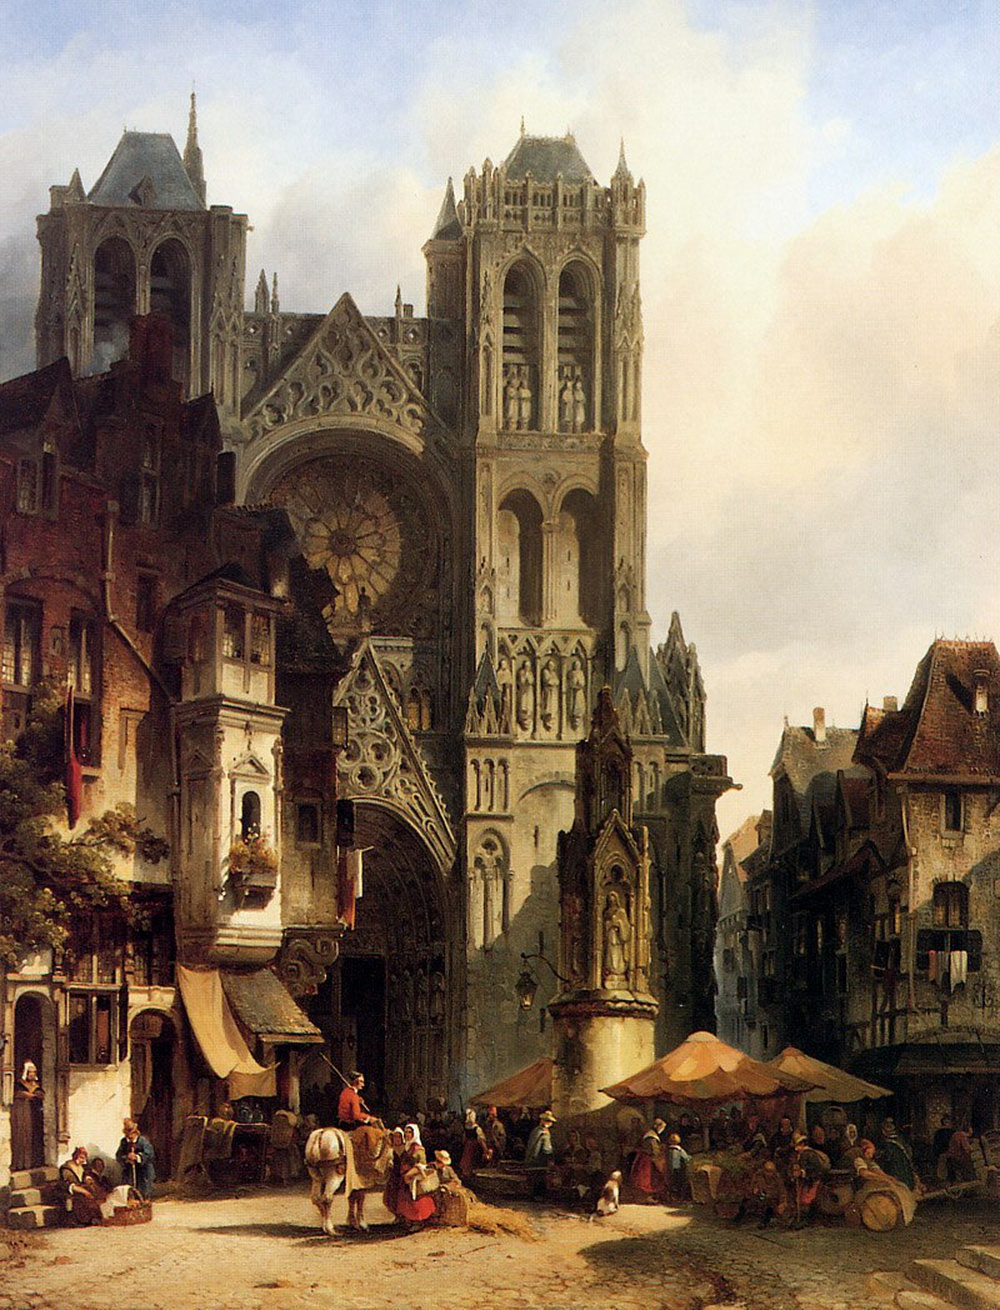 Medieval cities have souls